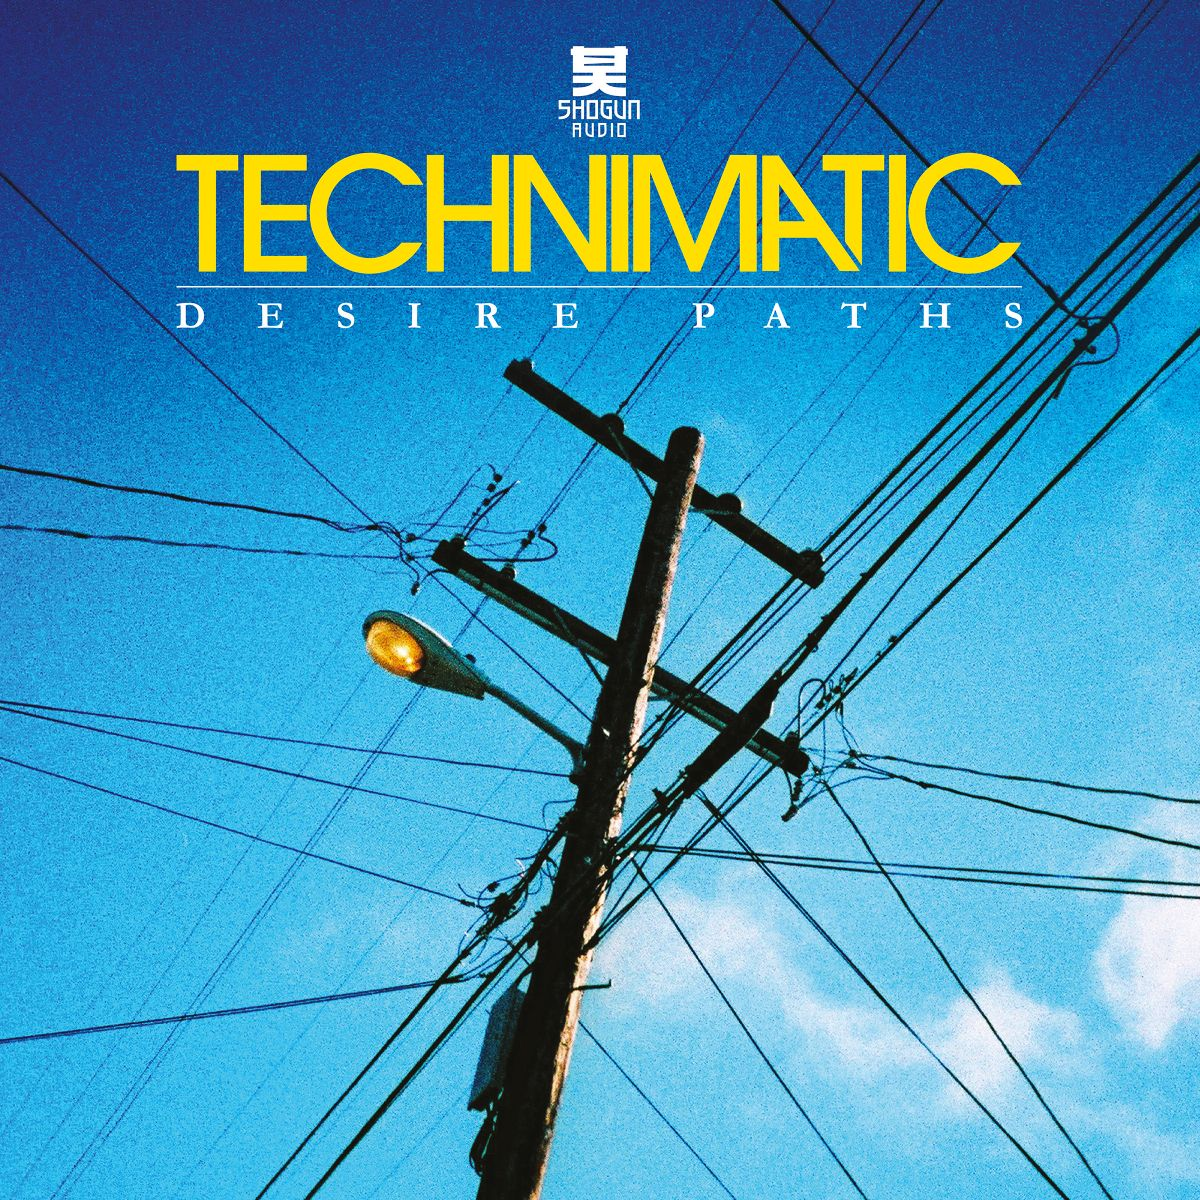 Technimatic/DESIRE PATHS DLP + CD